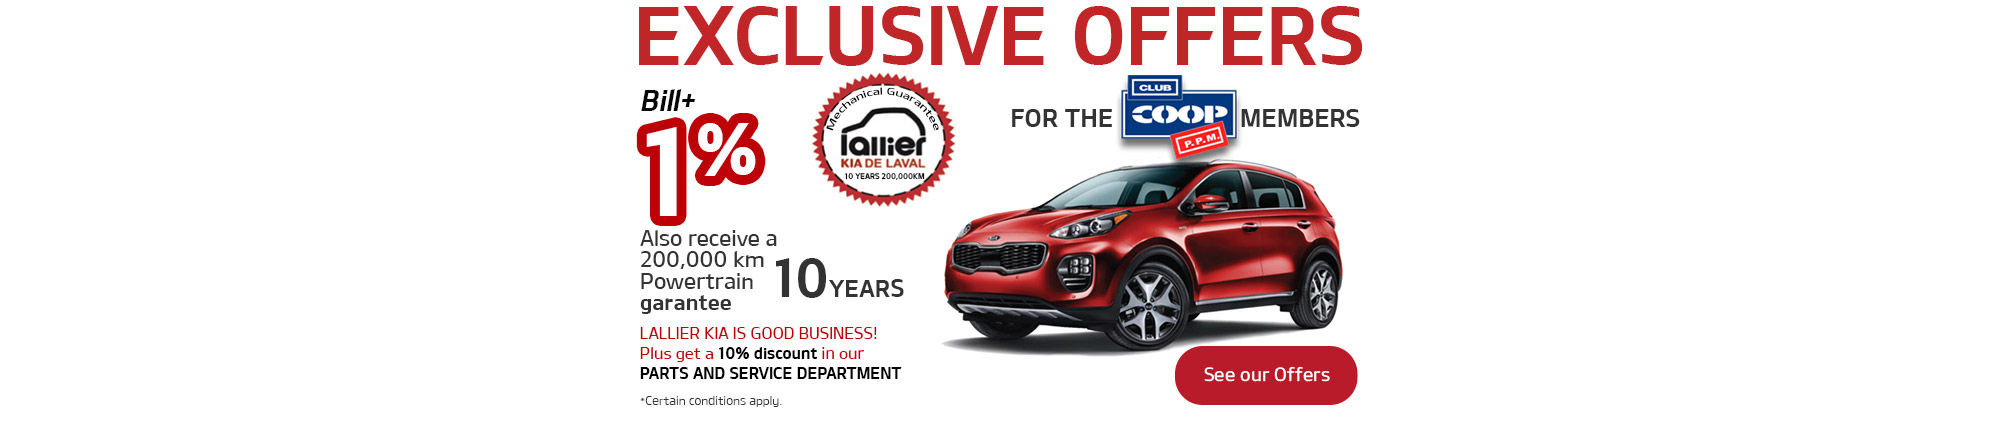 specials this rewards awards parts calgary reserve in special straightline ab kia